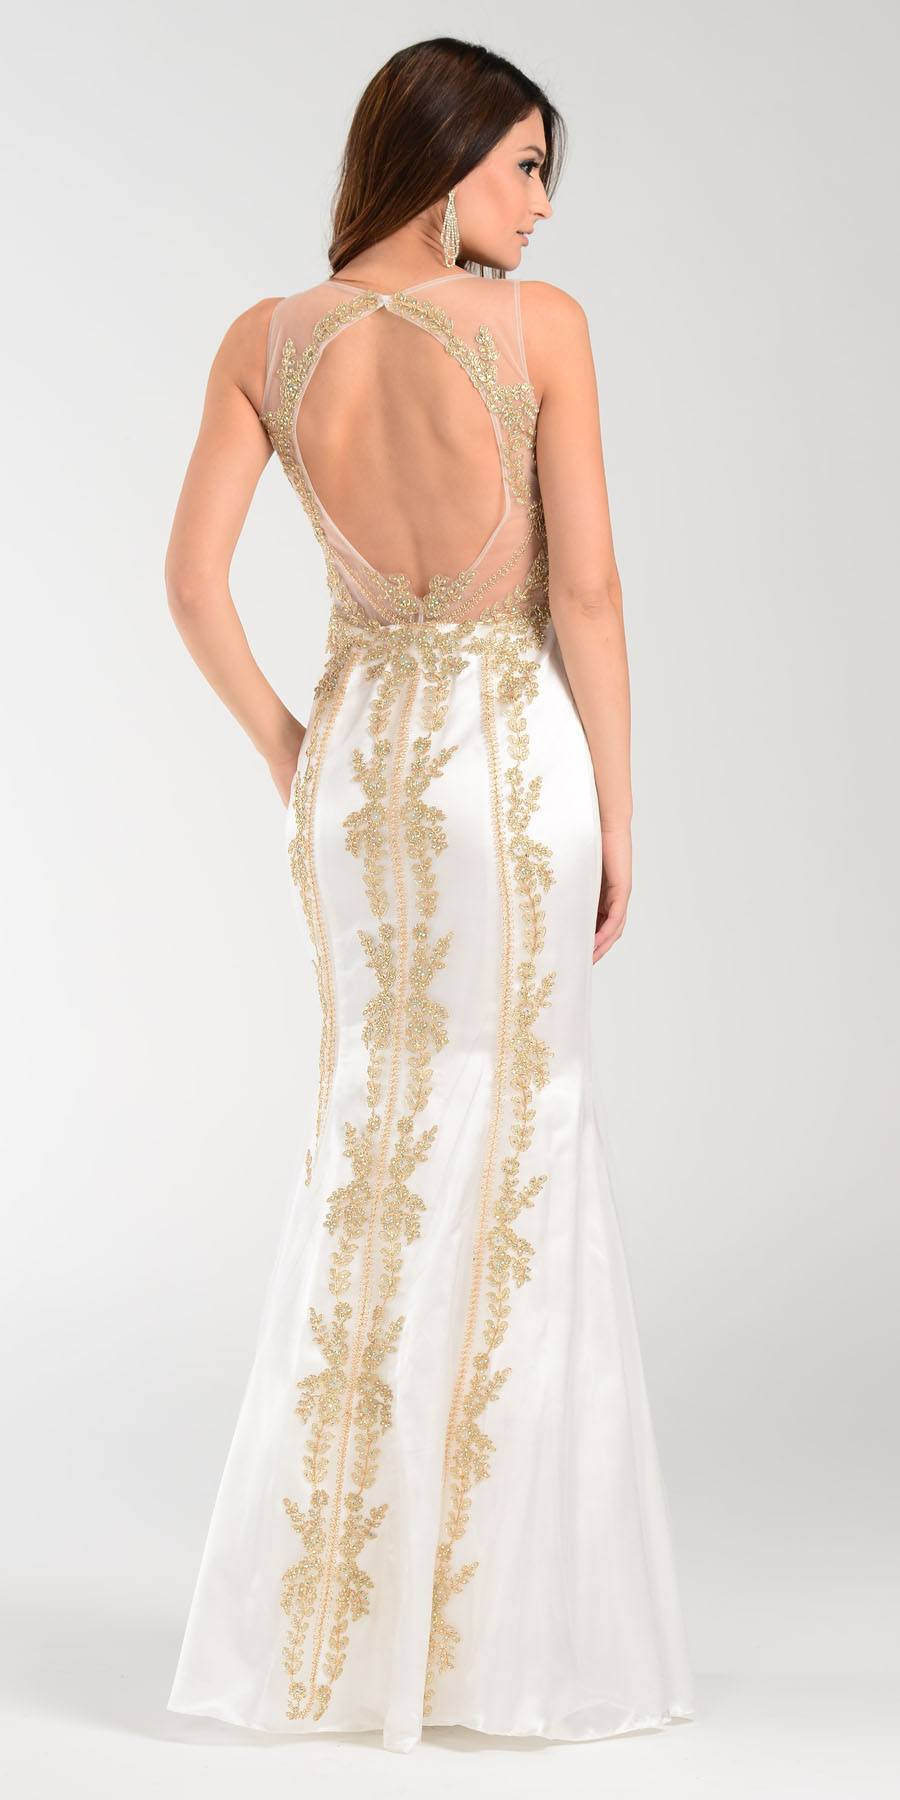 Poly USA 7480 Lace Appliques Rhinestones Prom Dress Off White Gold ...